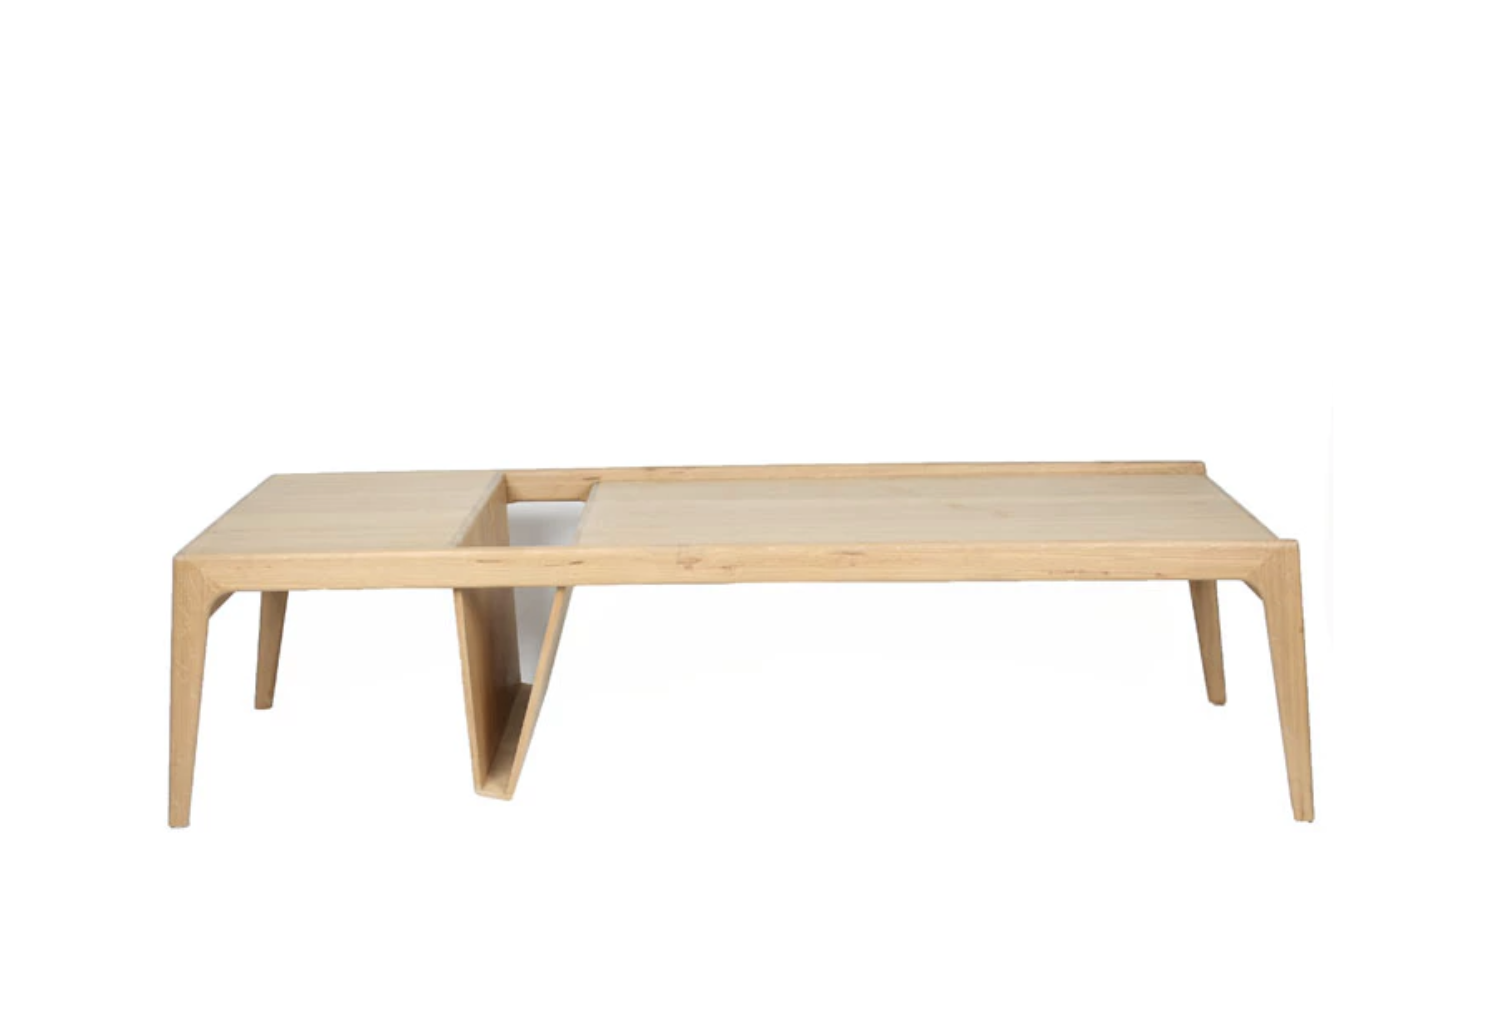 "Modern Style ""Mag"" Oak Coffee Table by Ali Sandifer. Current Bid Price: $211."